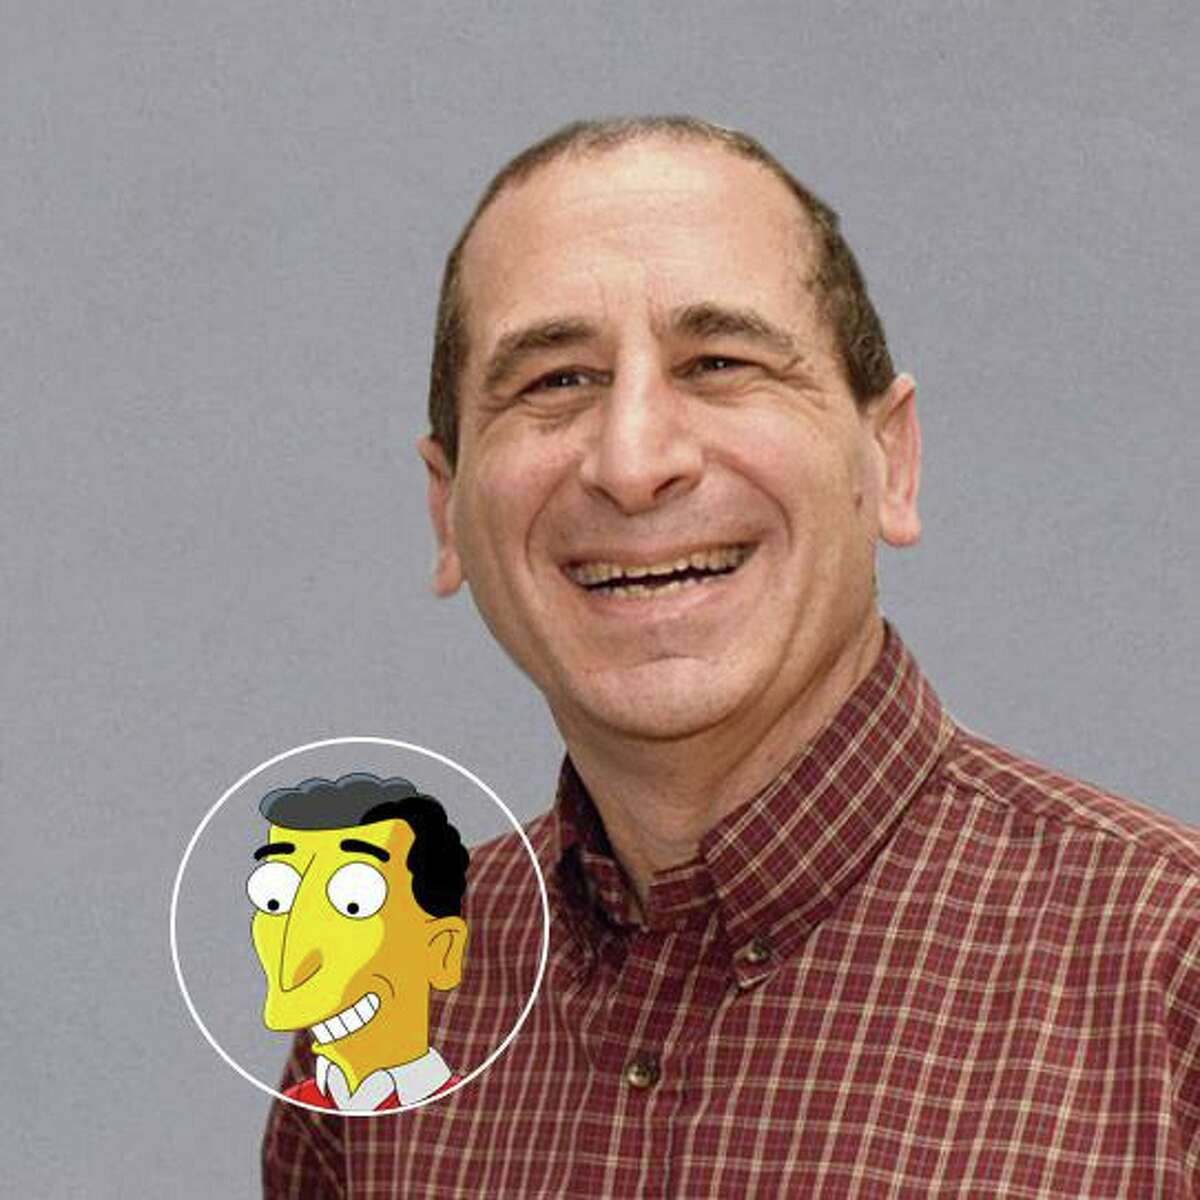 Mike Reiss, seen here with his